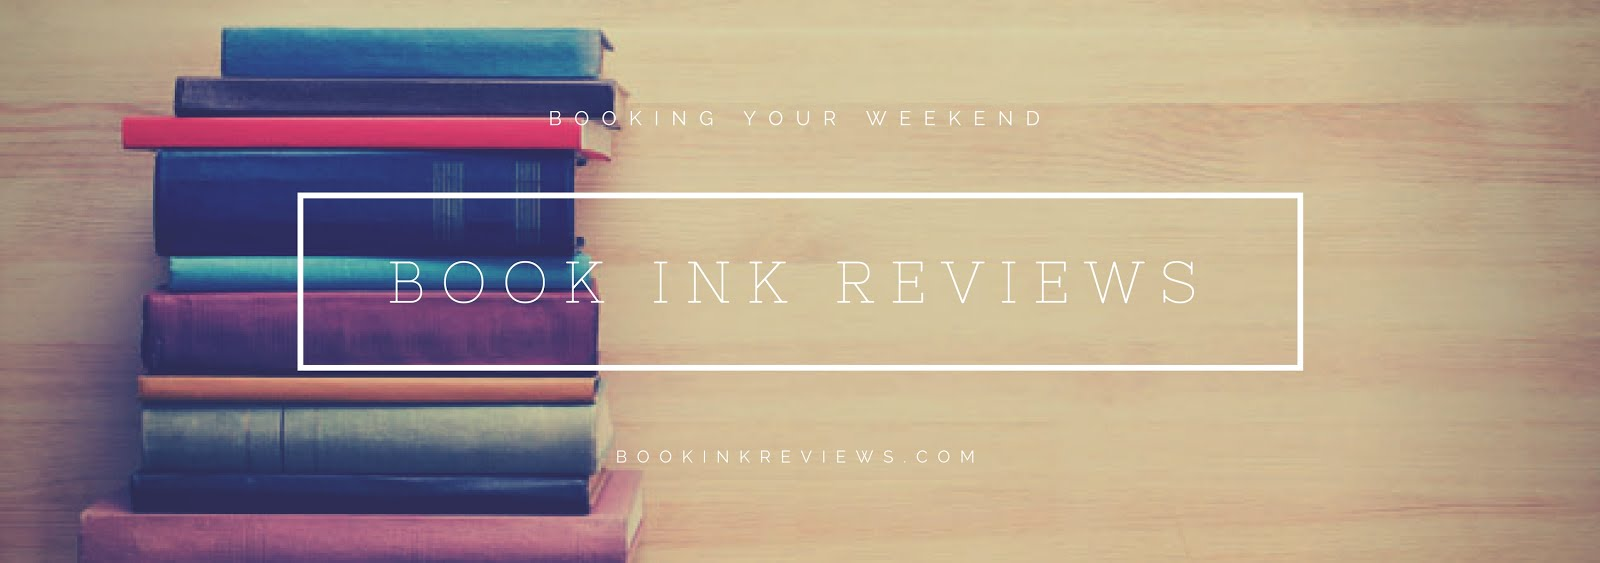 Book Ink Reviews